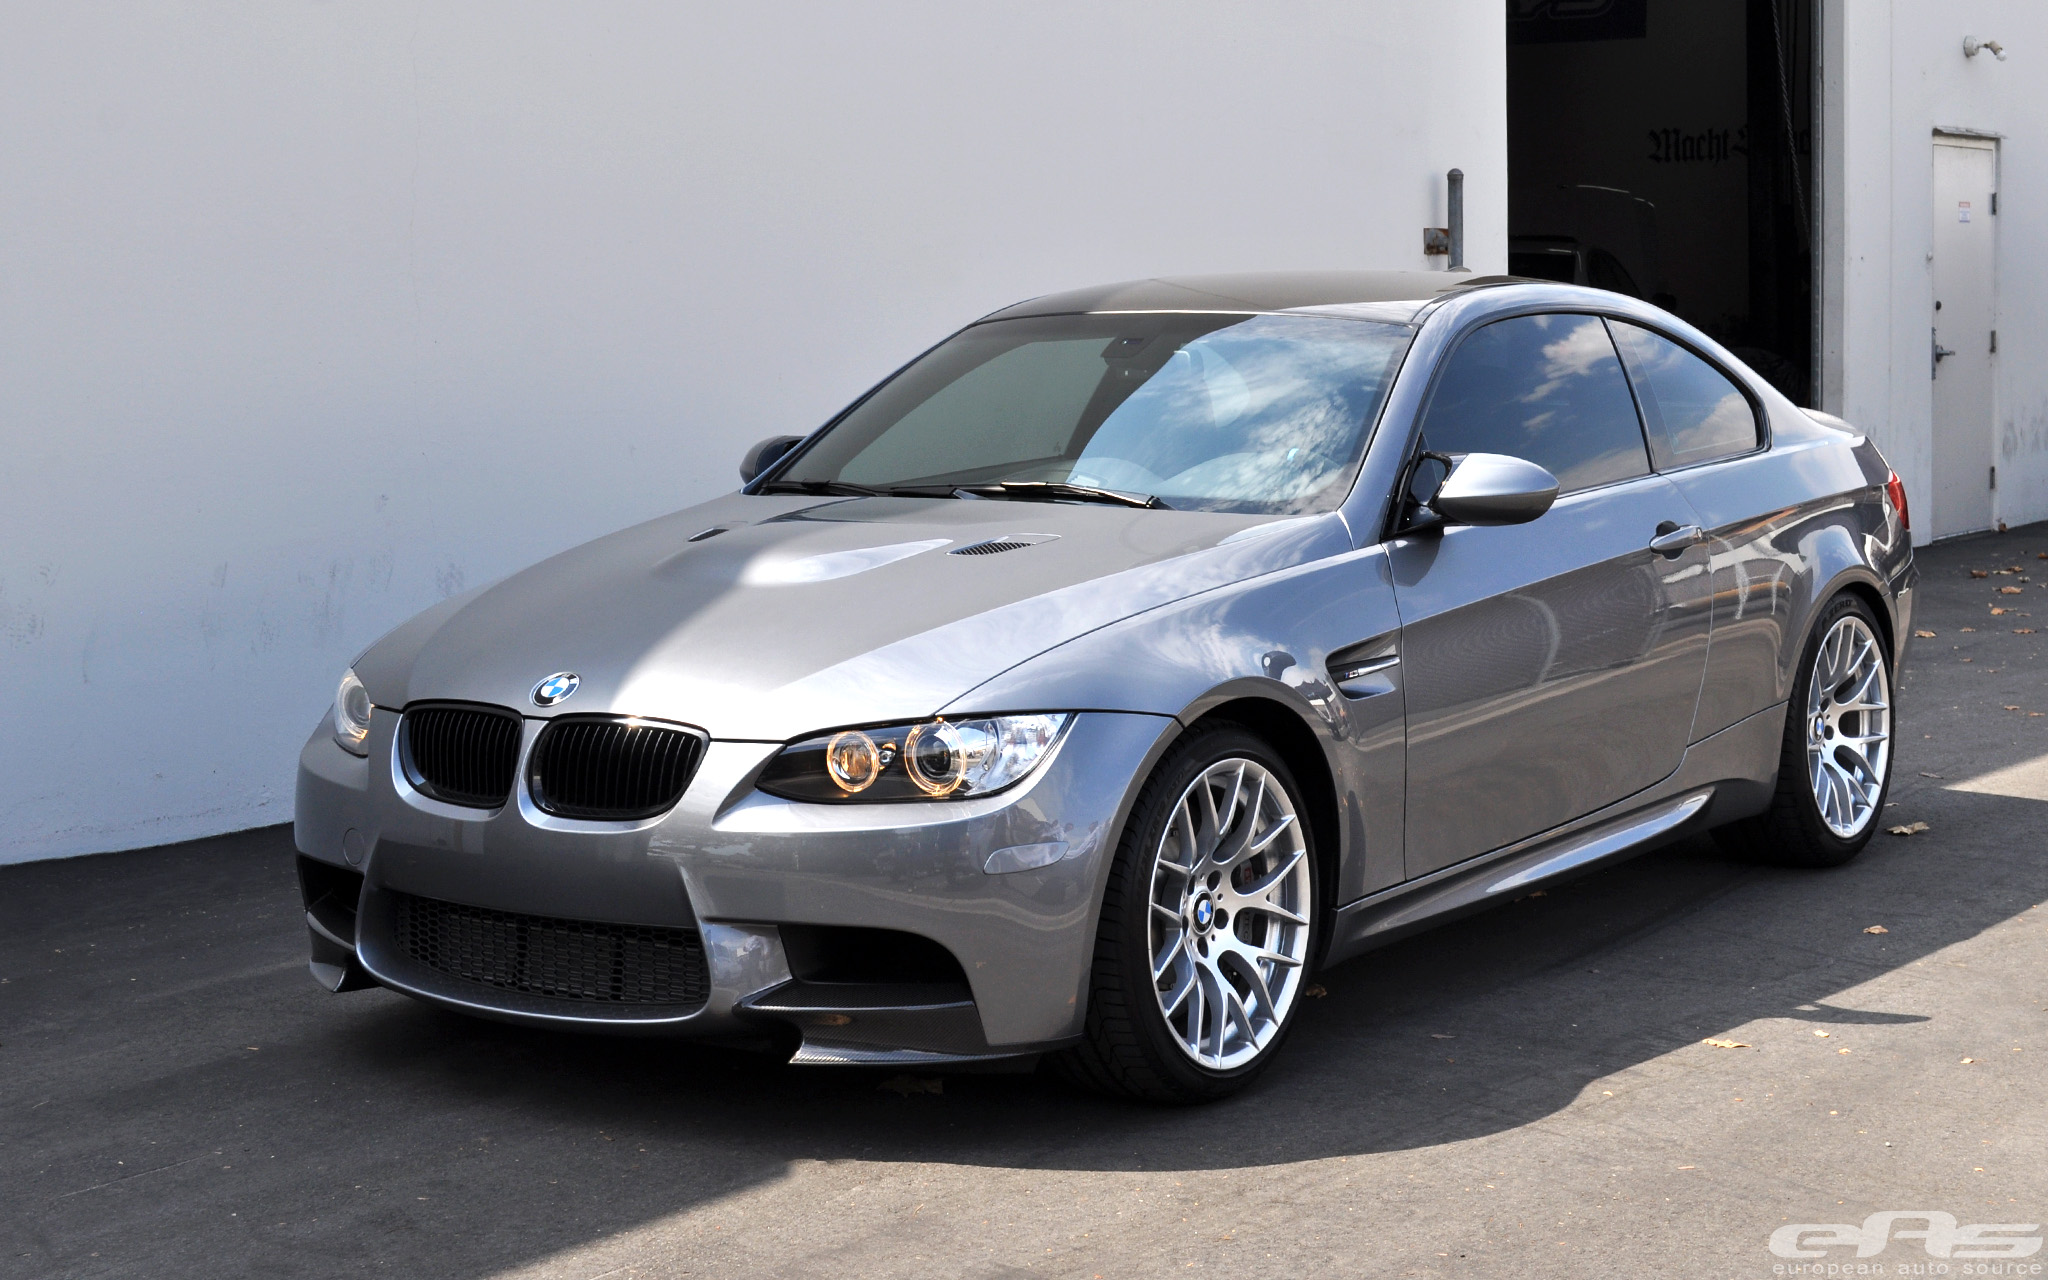 Bmw performance space gray e92 m3 zcp